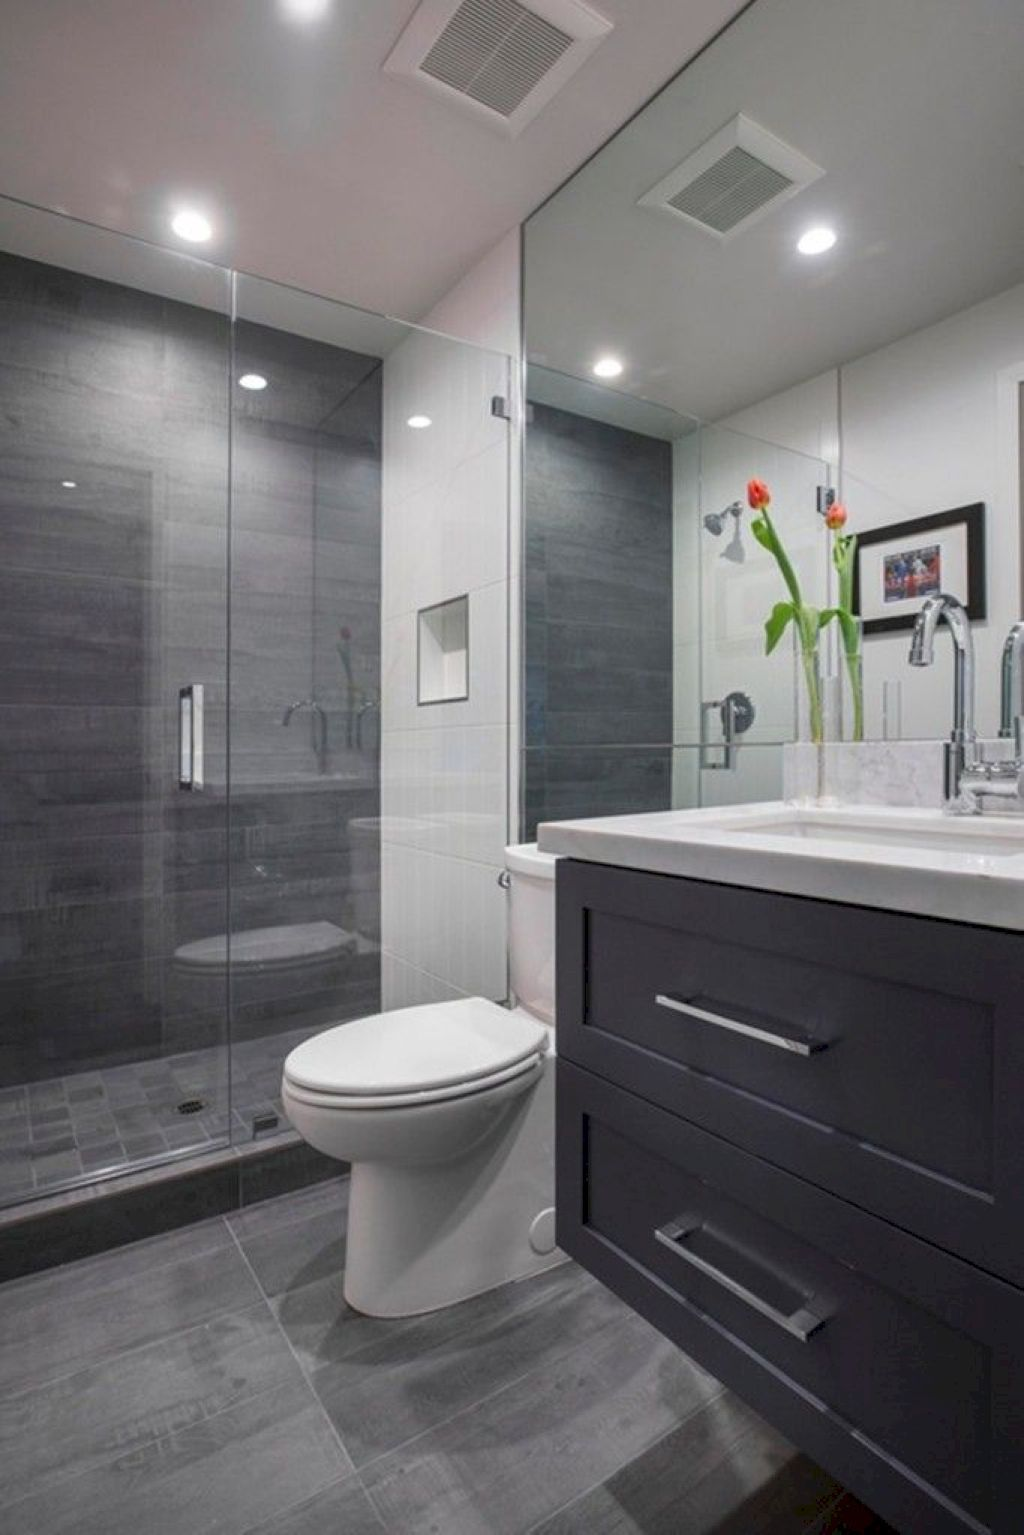 90 Gorgeous Small Bathroom Remodel Ideas With Images Bathroom Design Small Modern Small Bathroom Remodel Designs Bathrooms Remodel